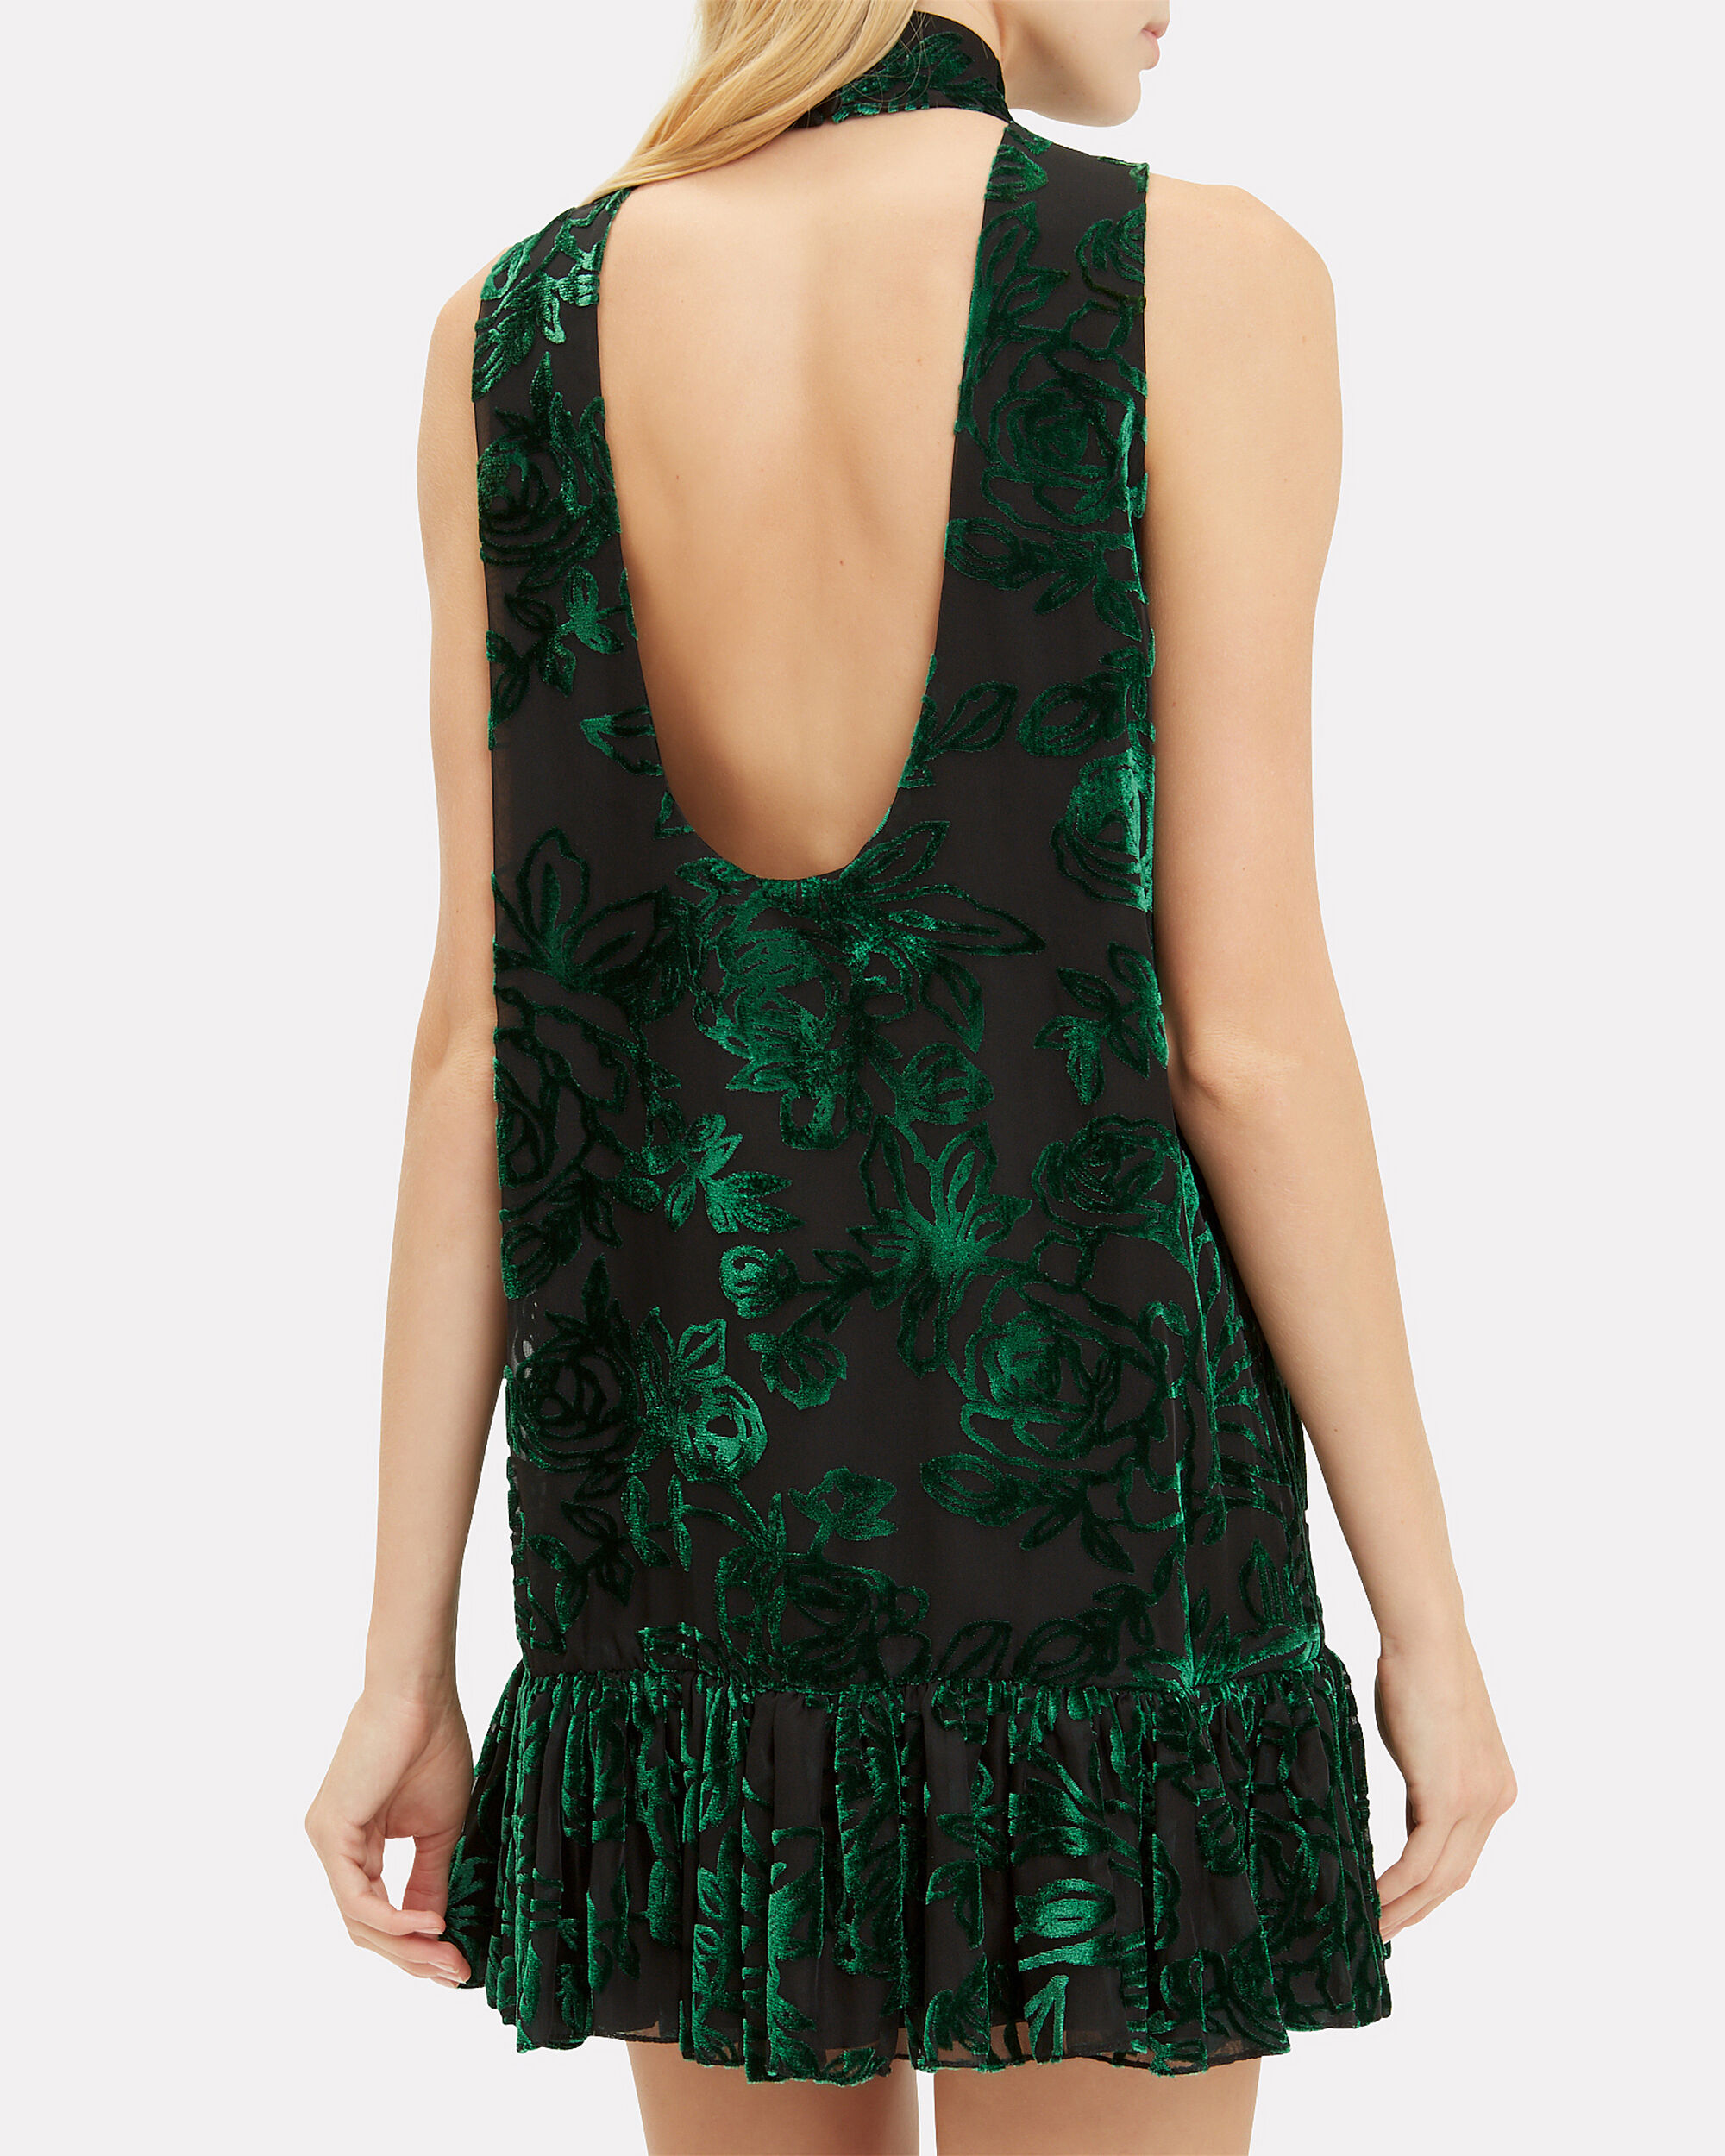 Angeletta Choker Mini Dress, EMERALD, hi-res